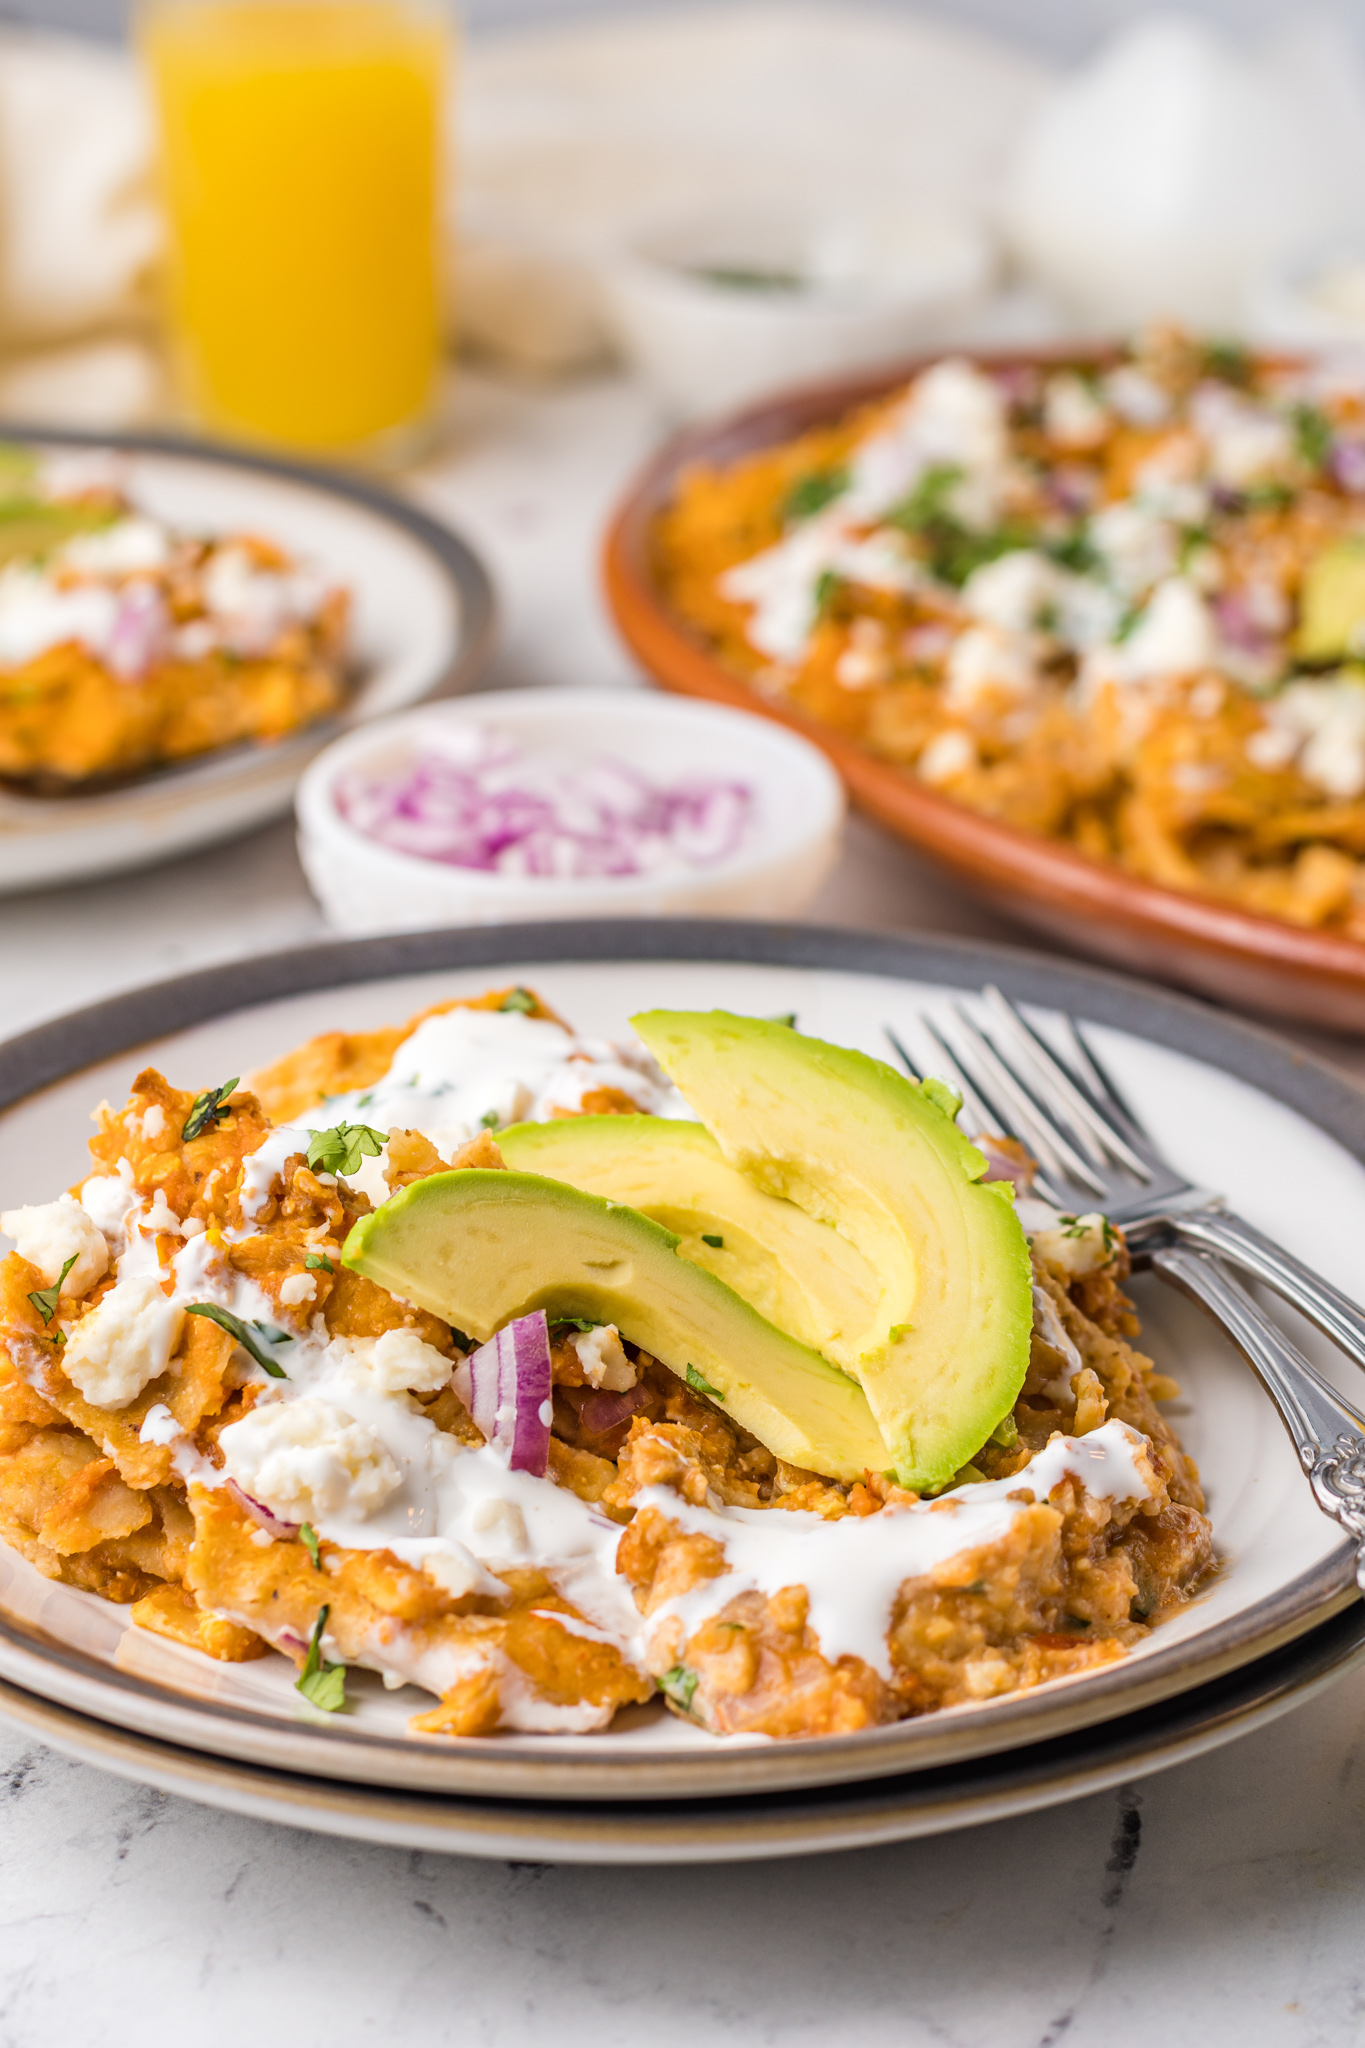 Chilaquiles Rojos Recipe on a plate with avocado.